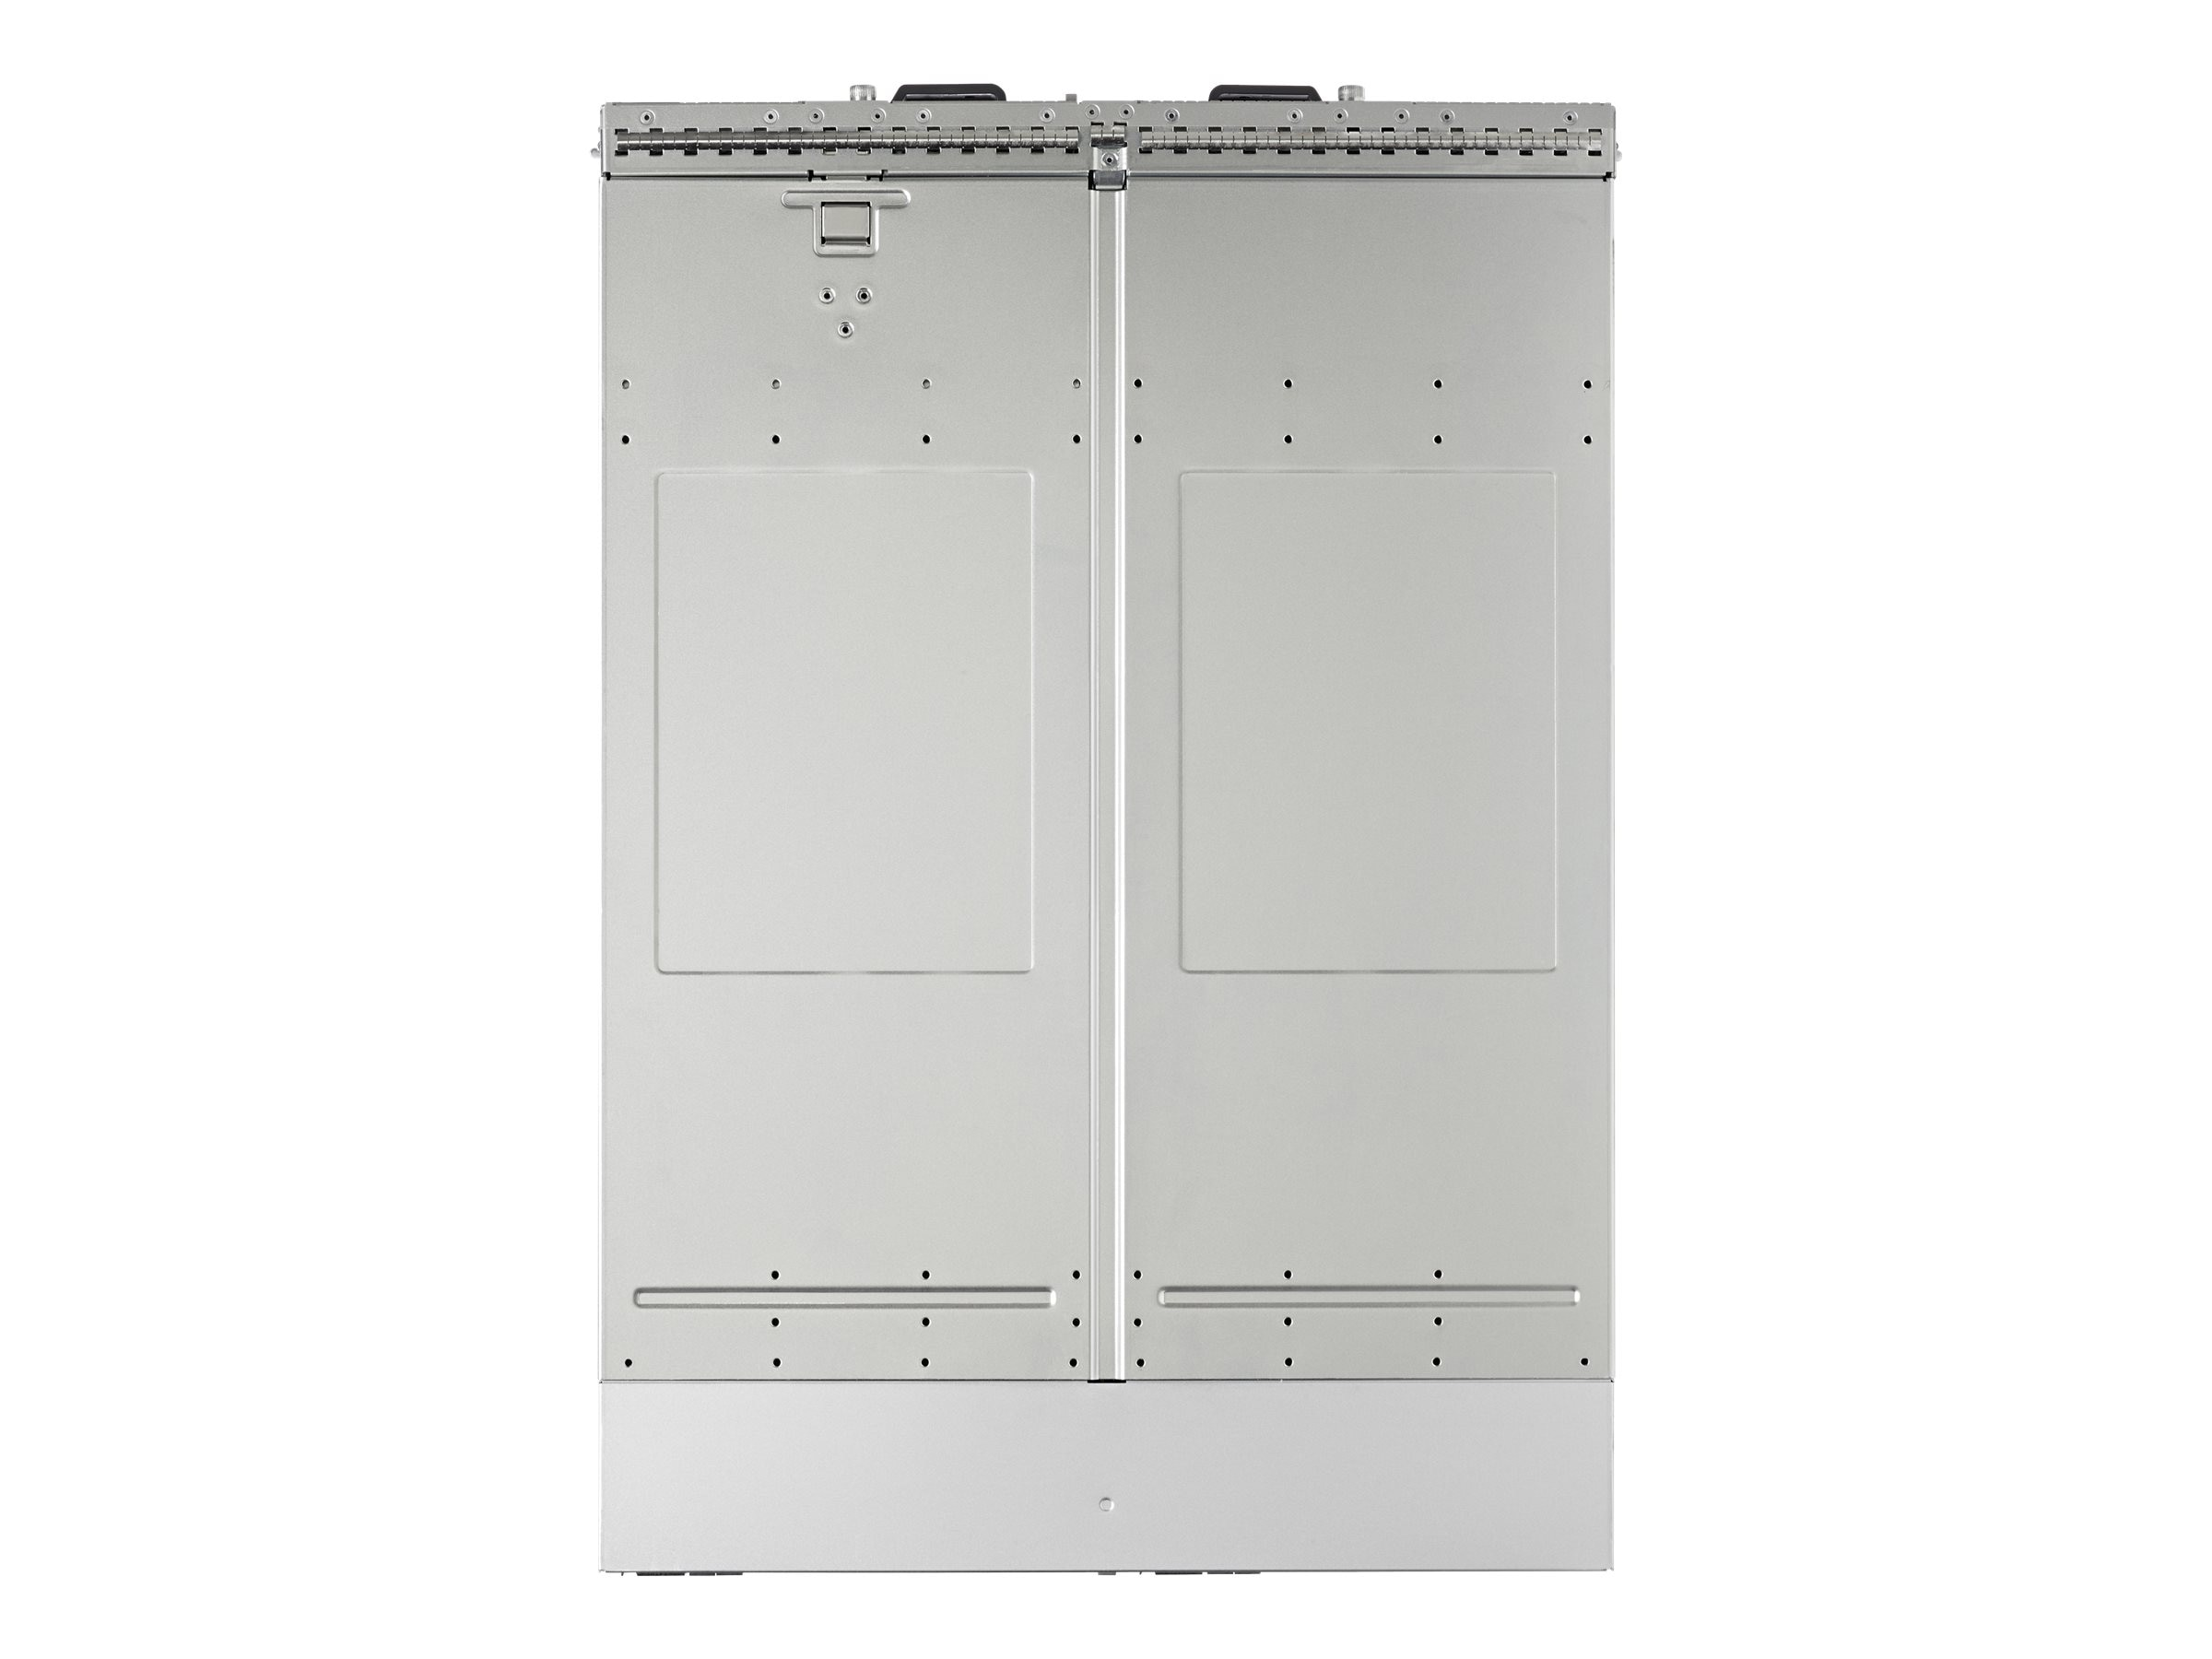 Cisco UCSB-B420-M4-U Image 3